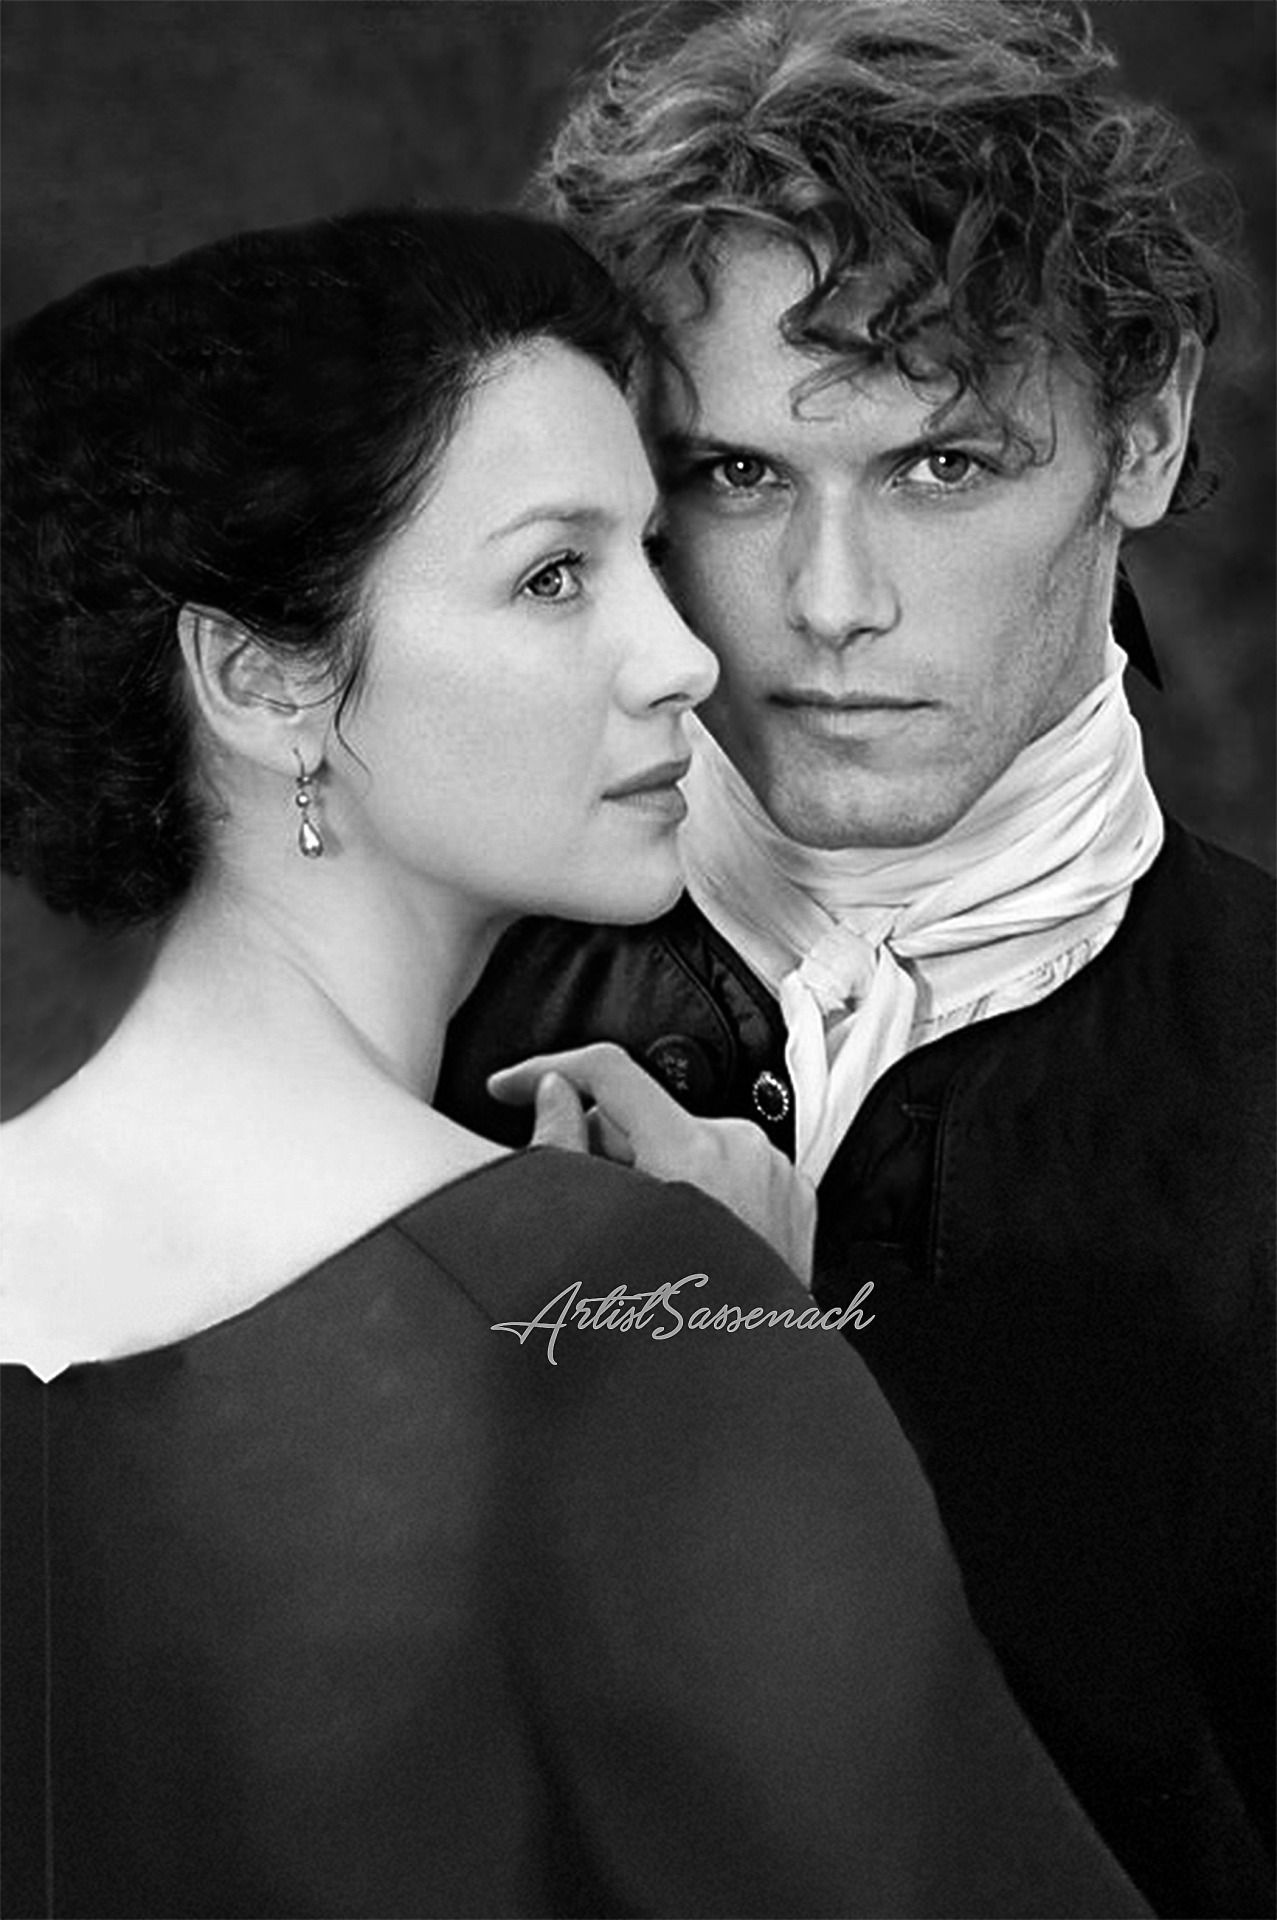 """betweenthescenes: """" artistsassenach: """" Jamie x Claire: TV Guide Cover (Without Logo) As requested by @sablelab :) """" """""""